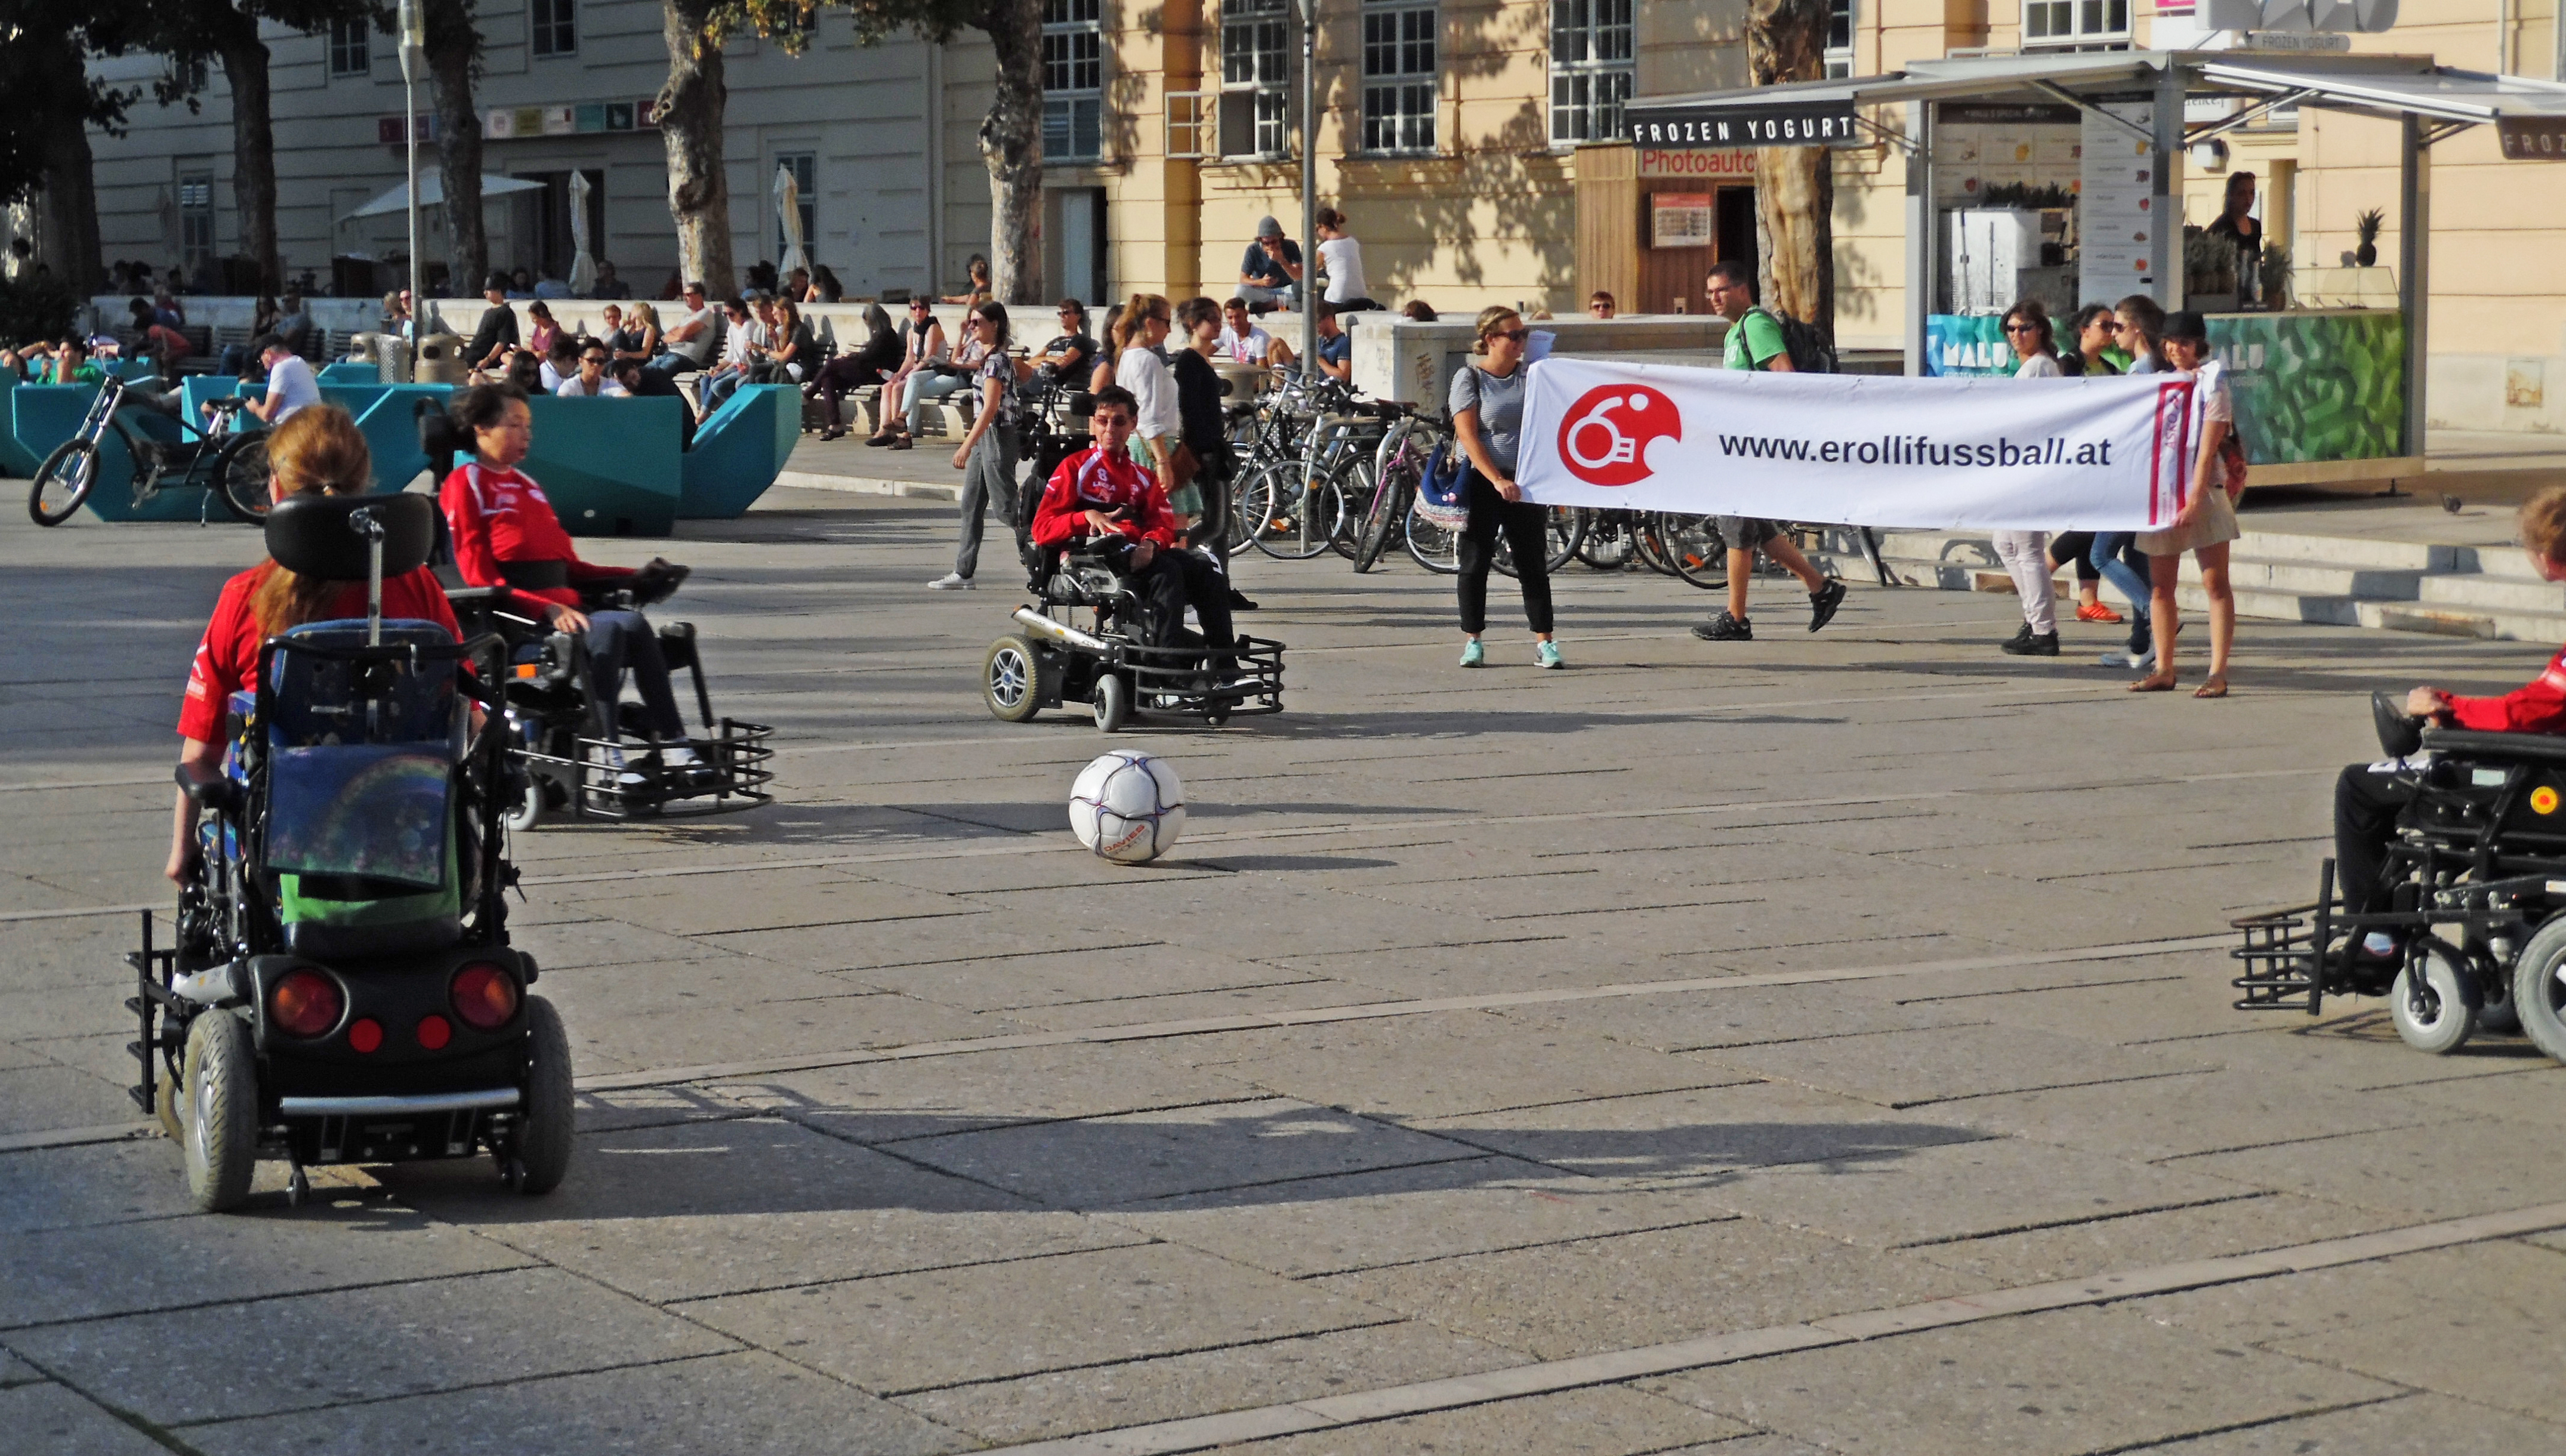 Flashmob im MQ am 23. August 2015